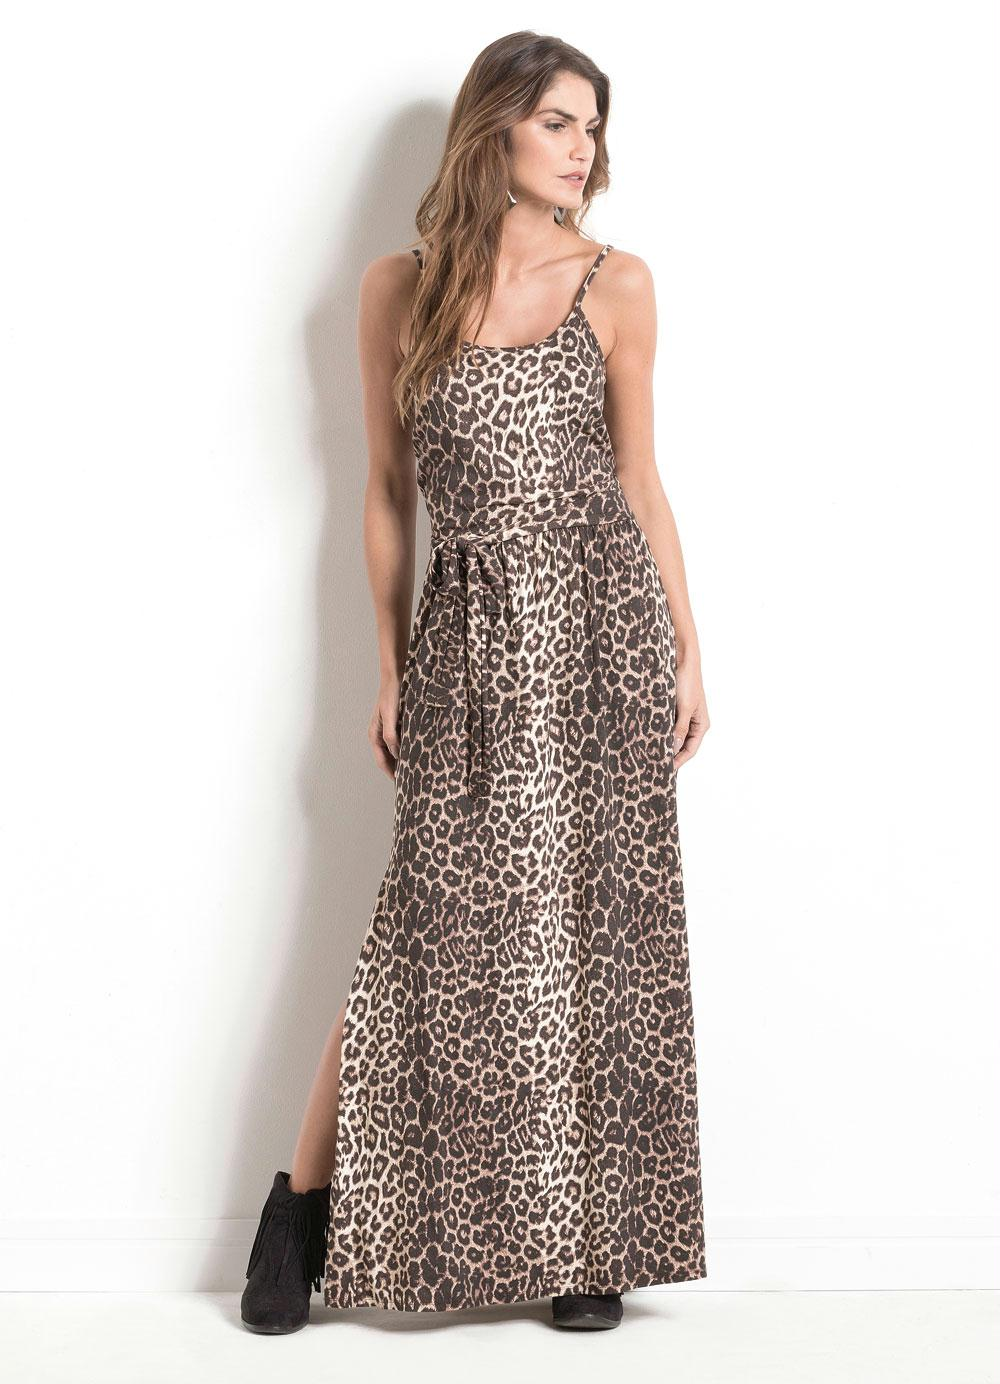 831d417306 VESTIDO LONGO ANIMAL PRINT QUINTESS COM FENDA - Quintess